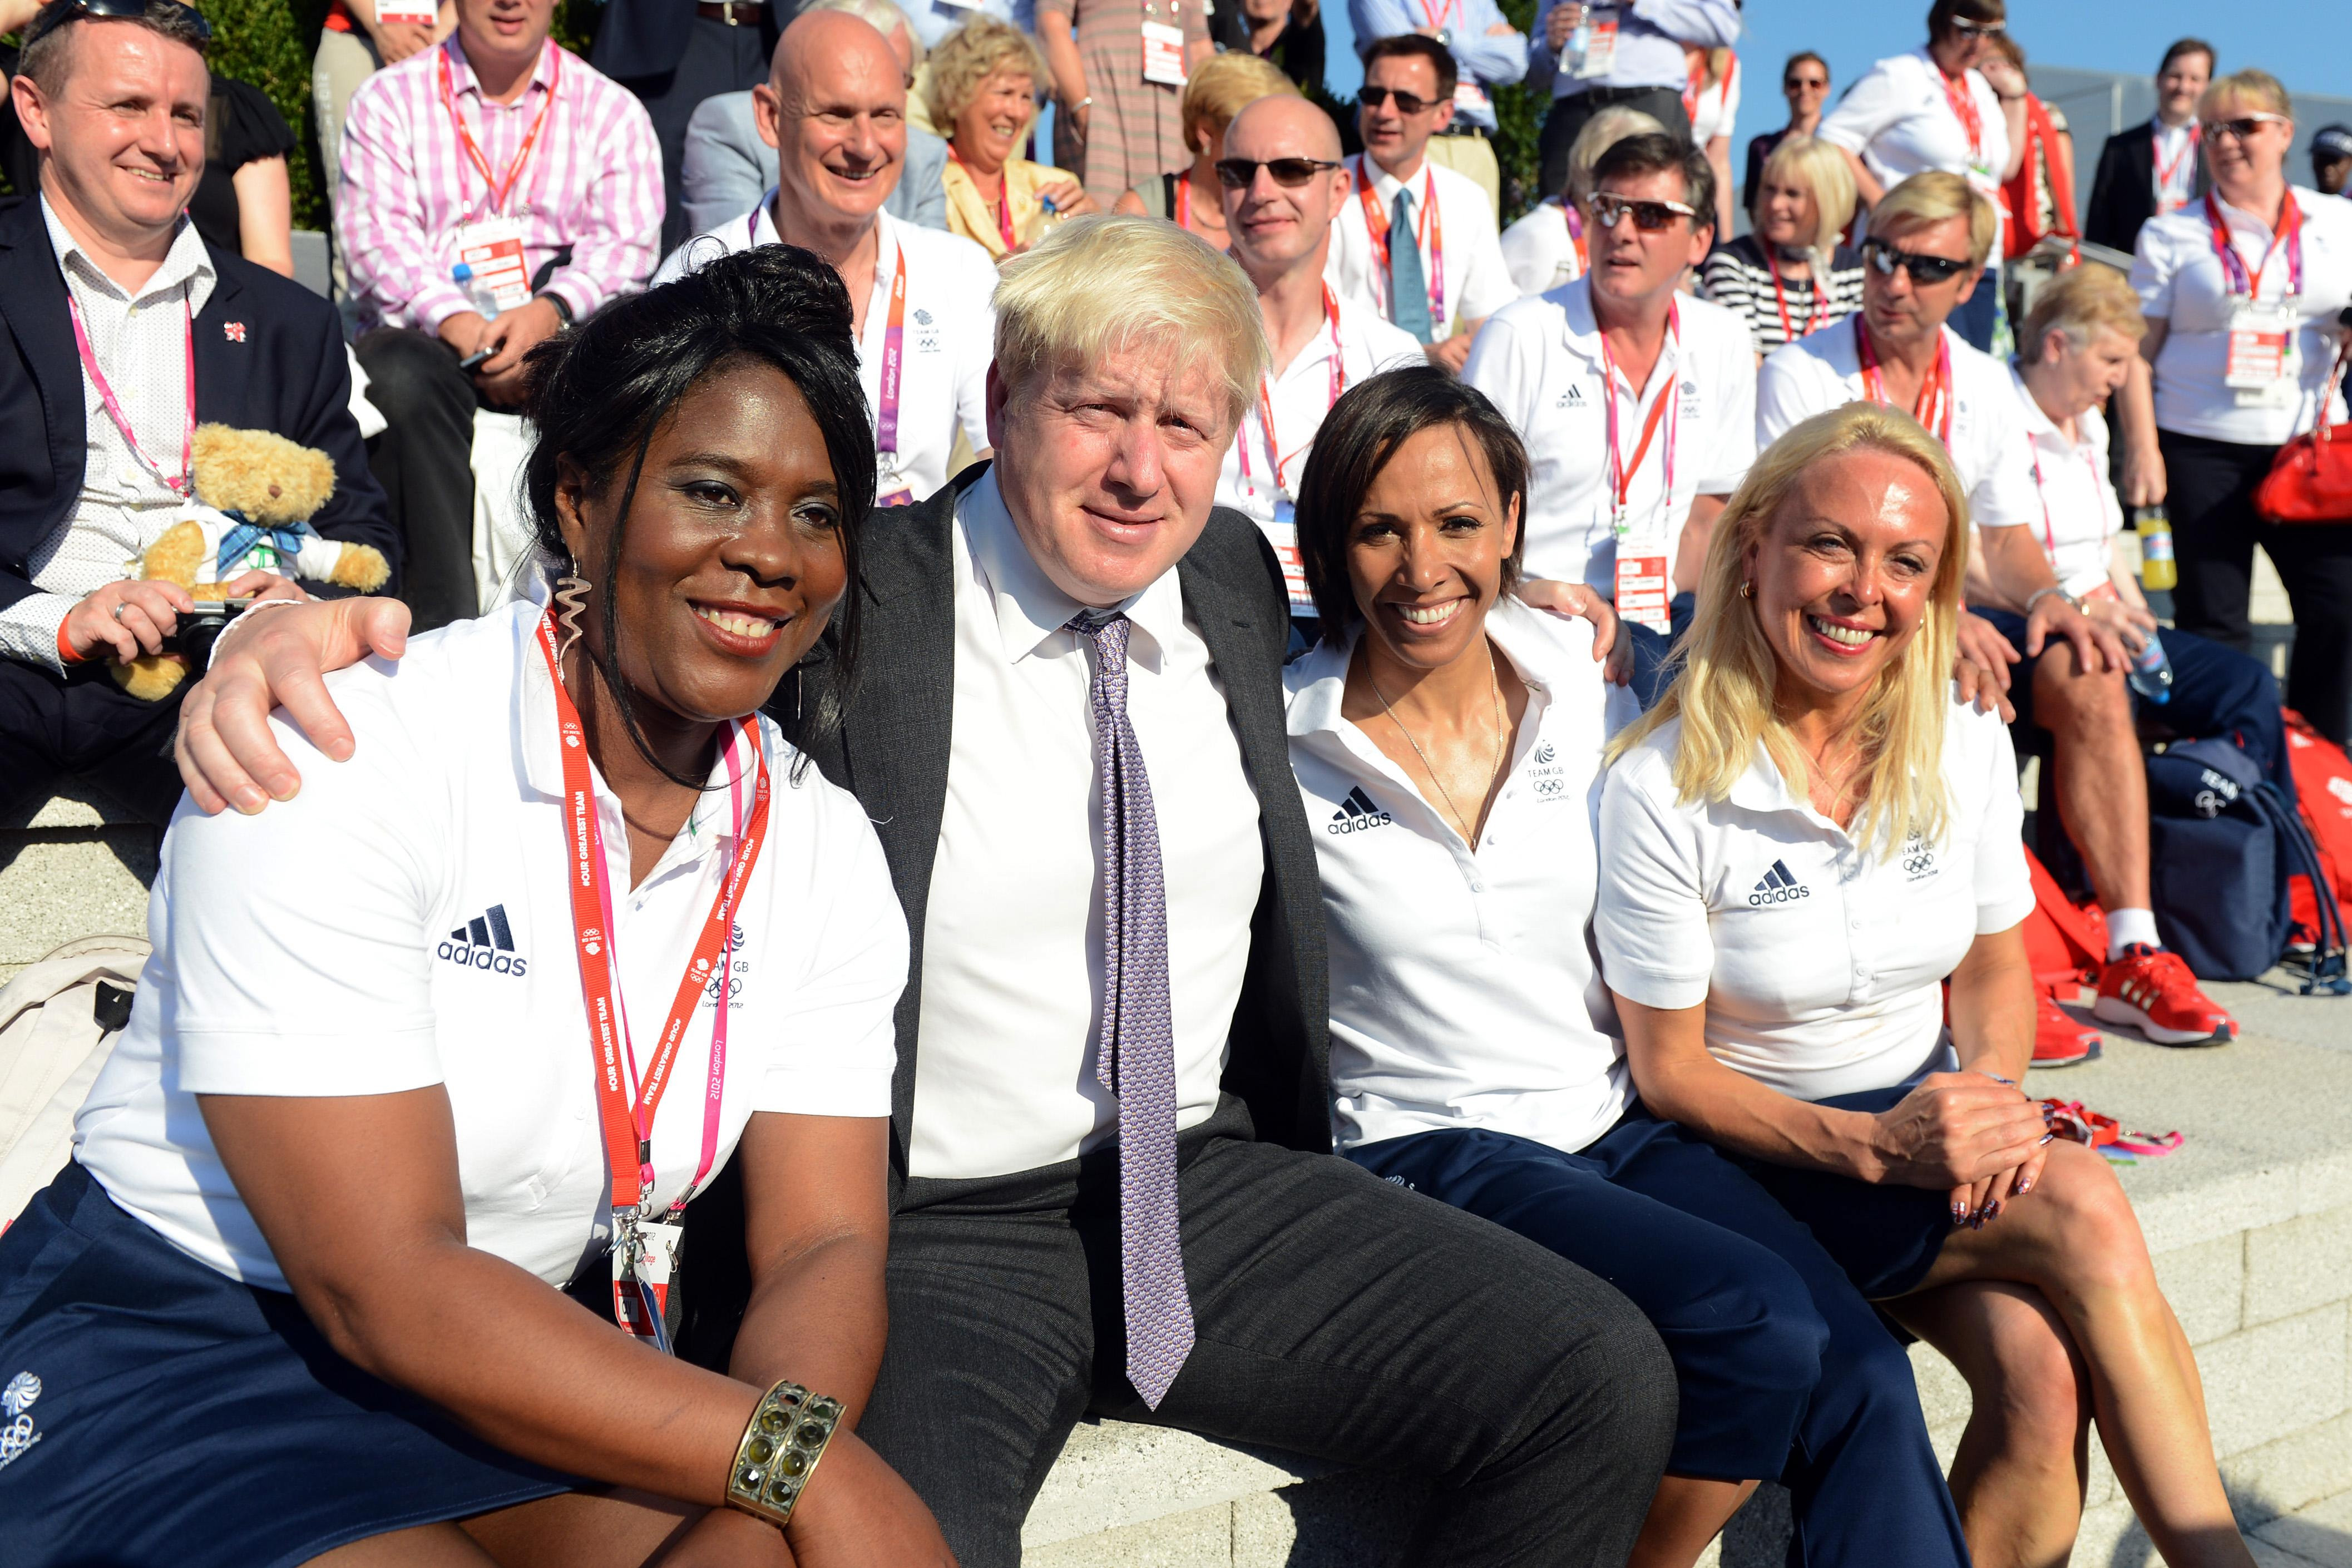 London Mayor Boris Johnson poses with Tessa Sanderson (left), Dame Kelly Holmes and Jayne Torvill (right) during the Welcome Ceremony at the Athletes Village, Olympic Park, London.